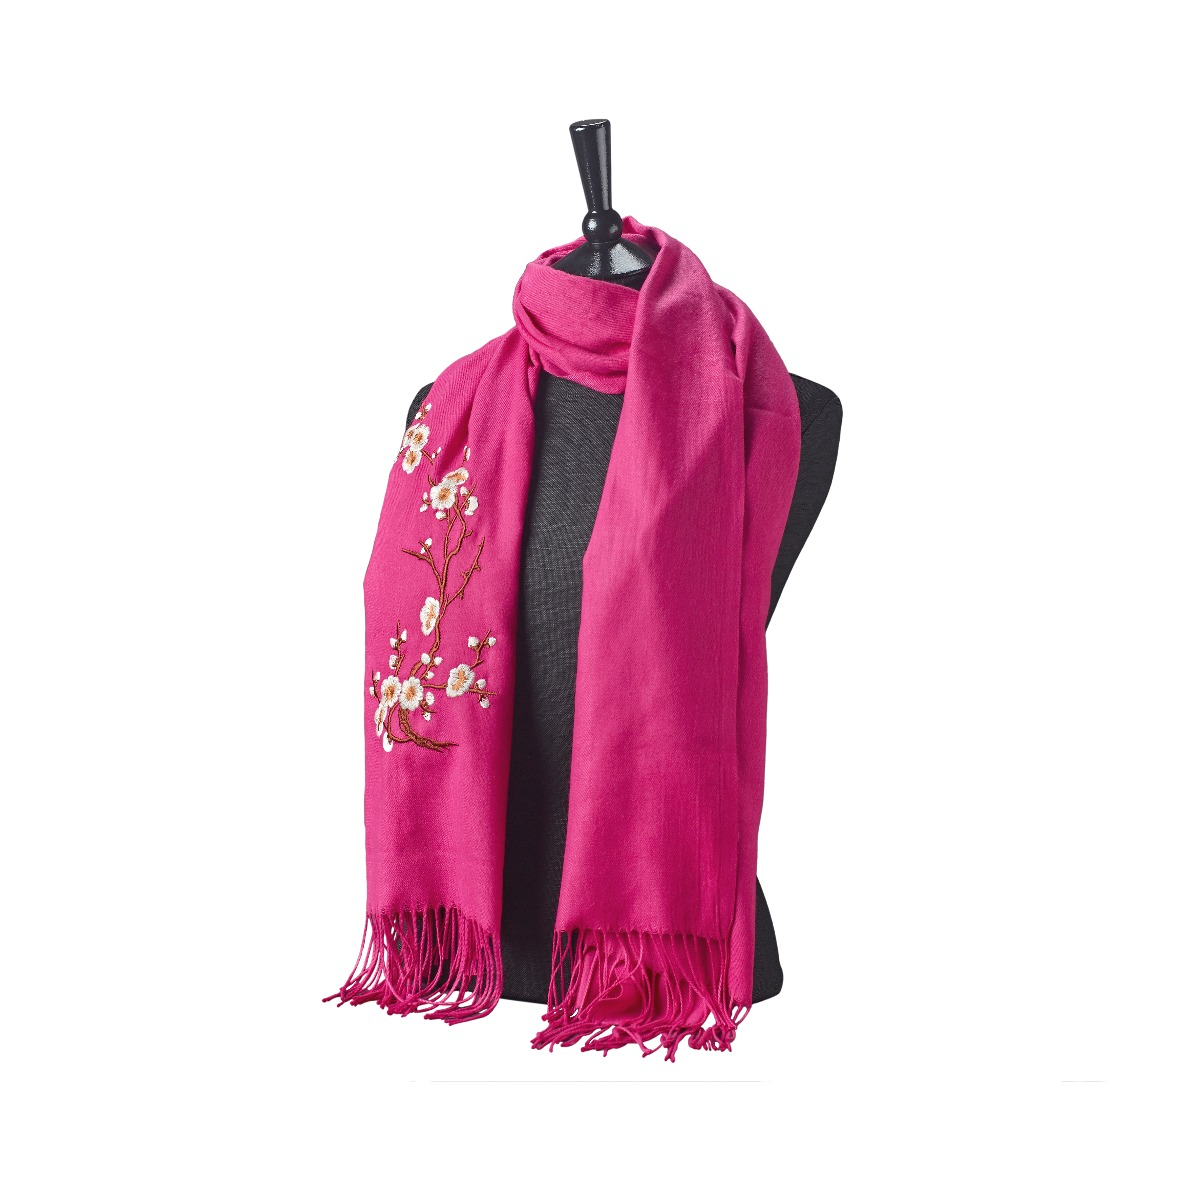 Cherry blossom scarf (pink)